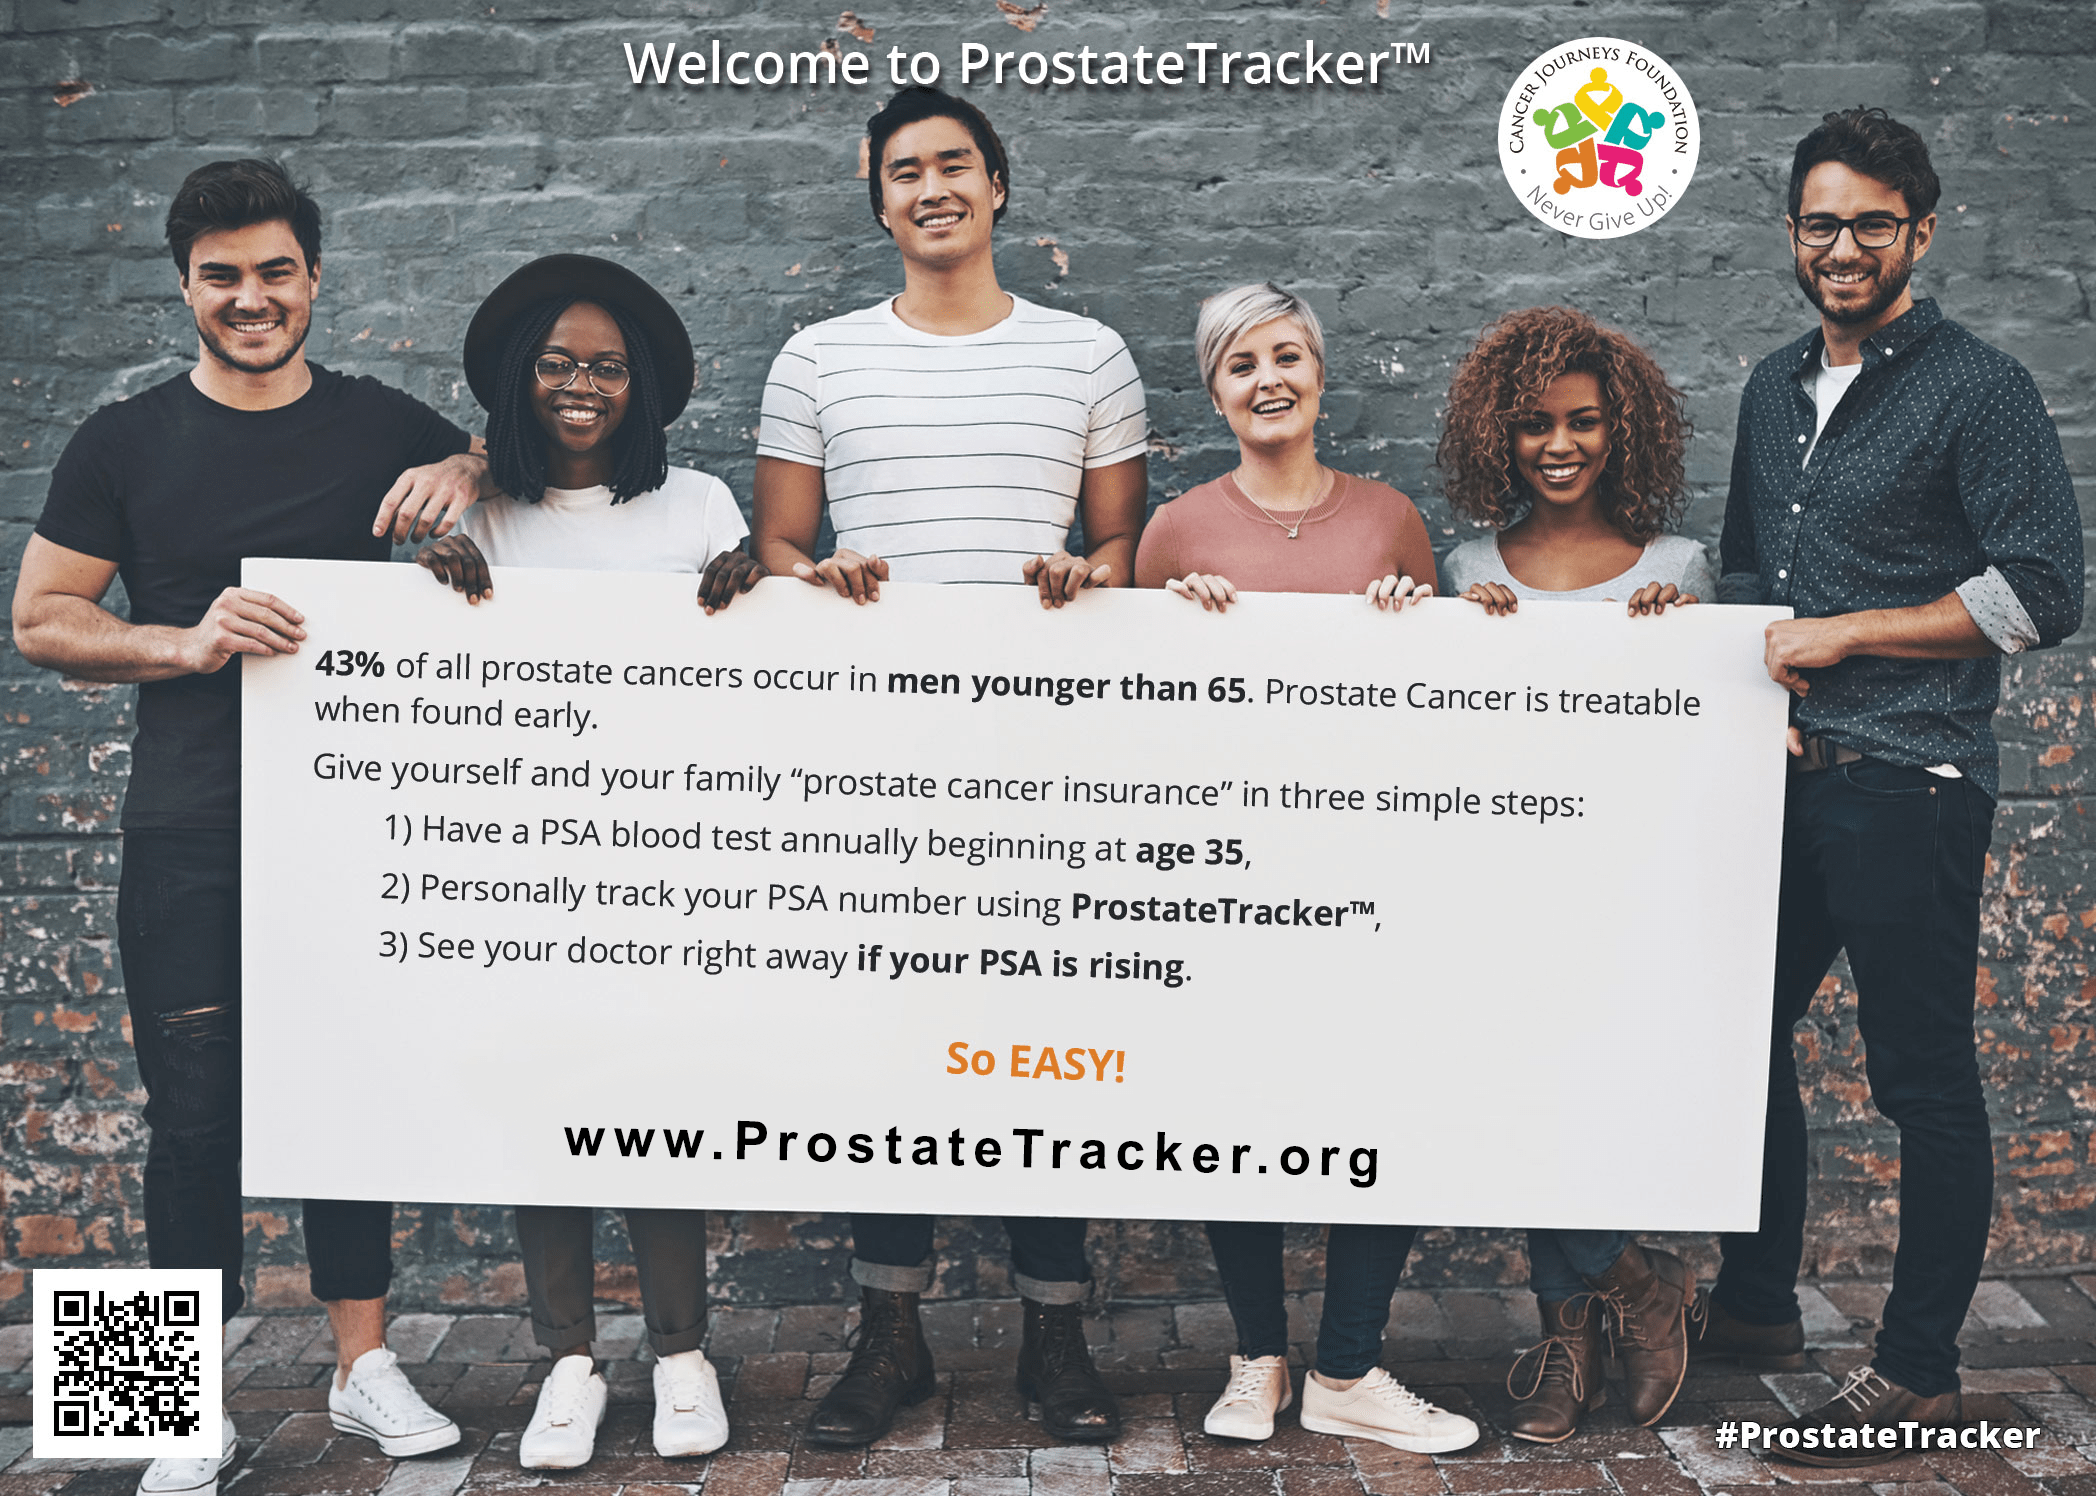 Picture of the landing page for the prostate tracker early detection systems